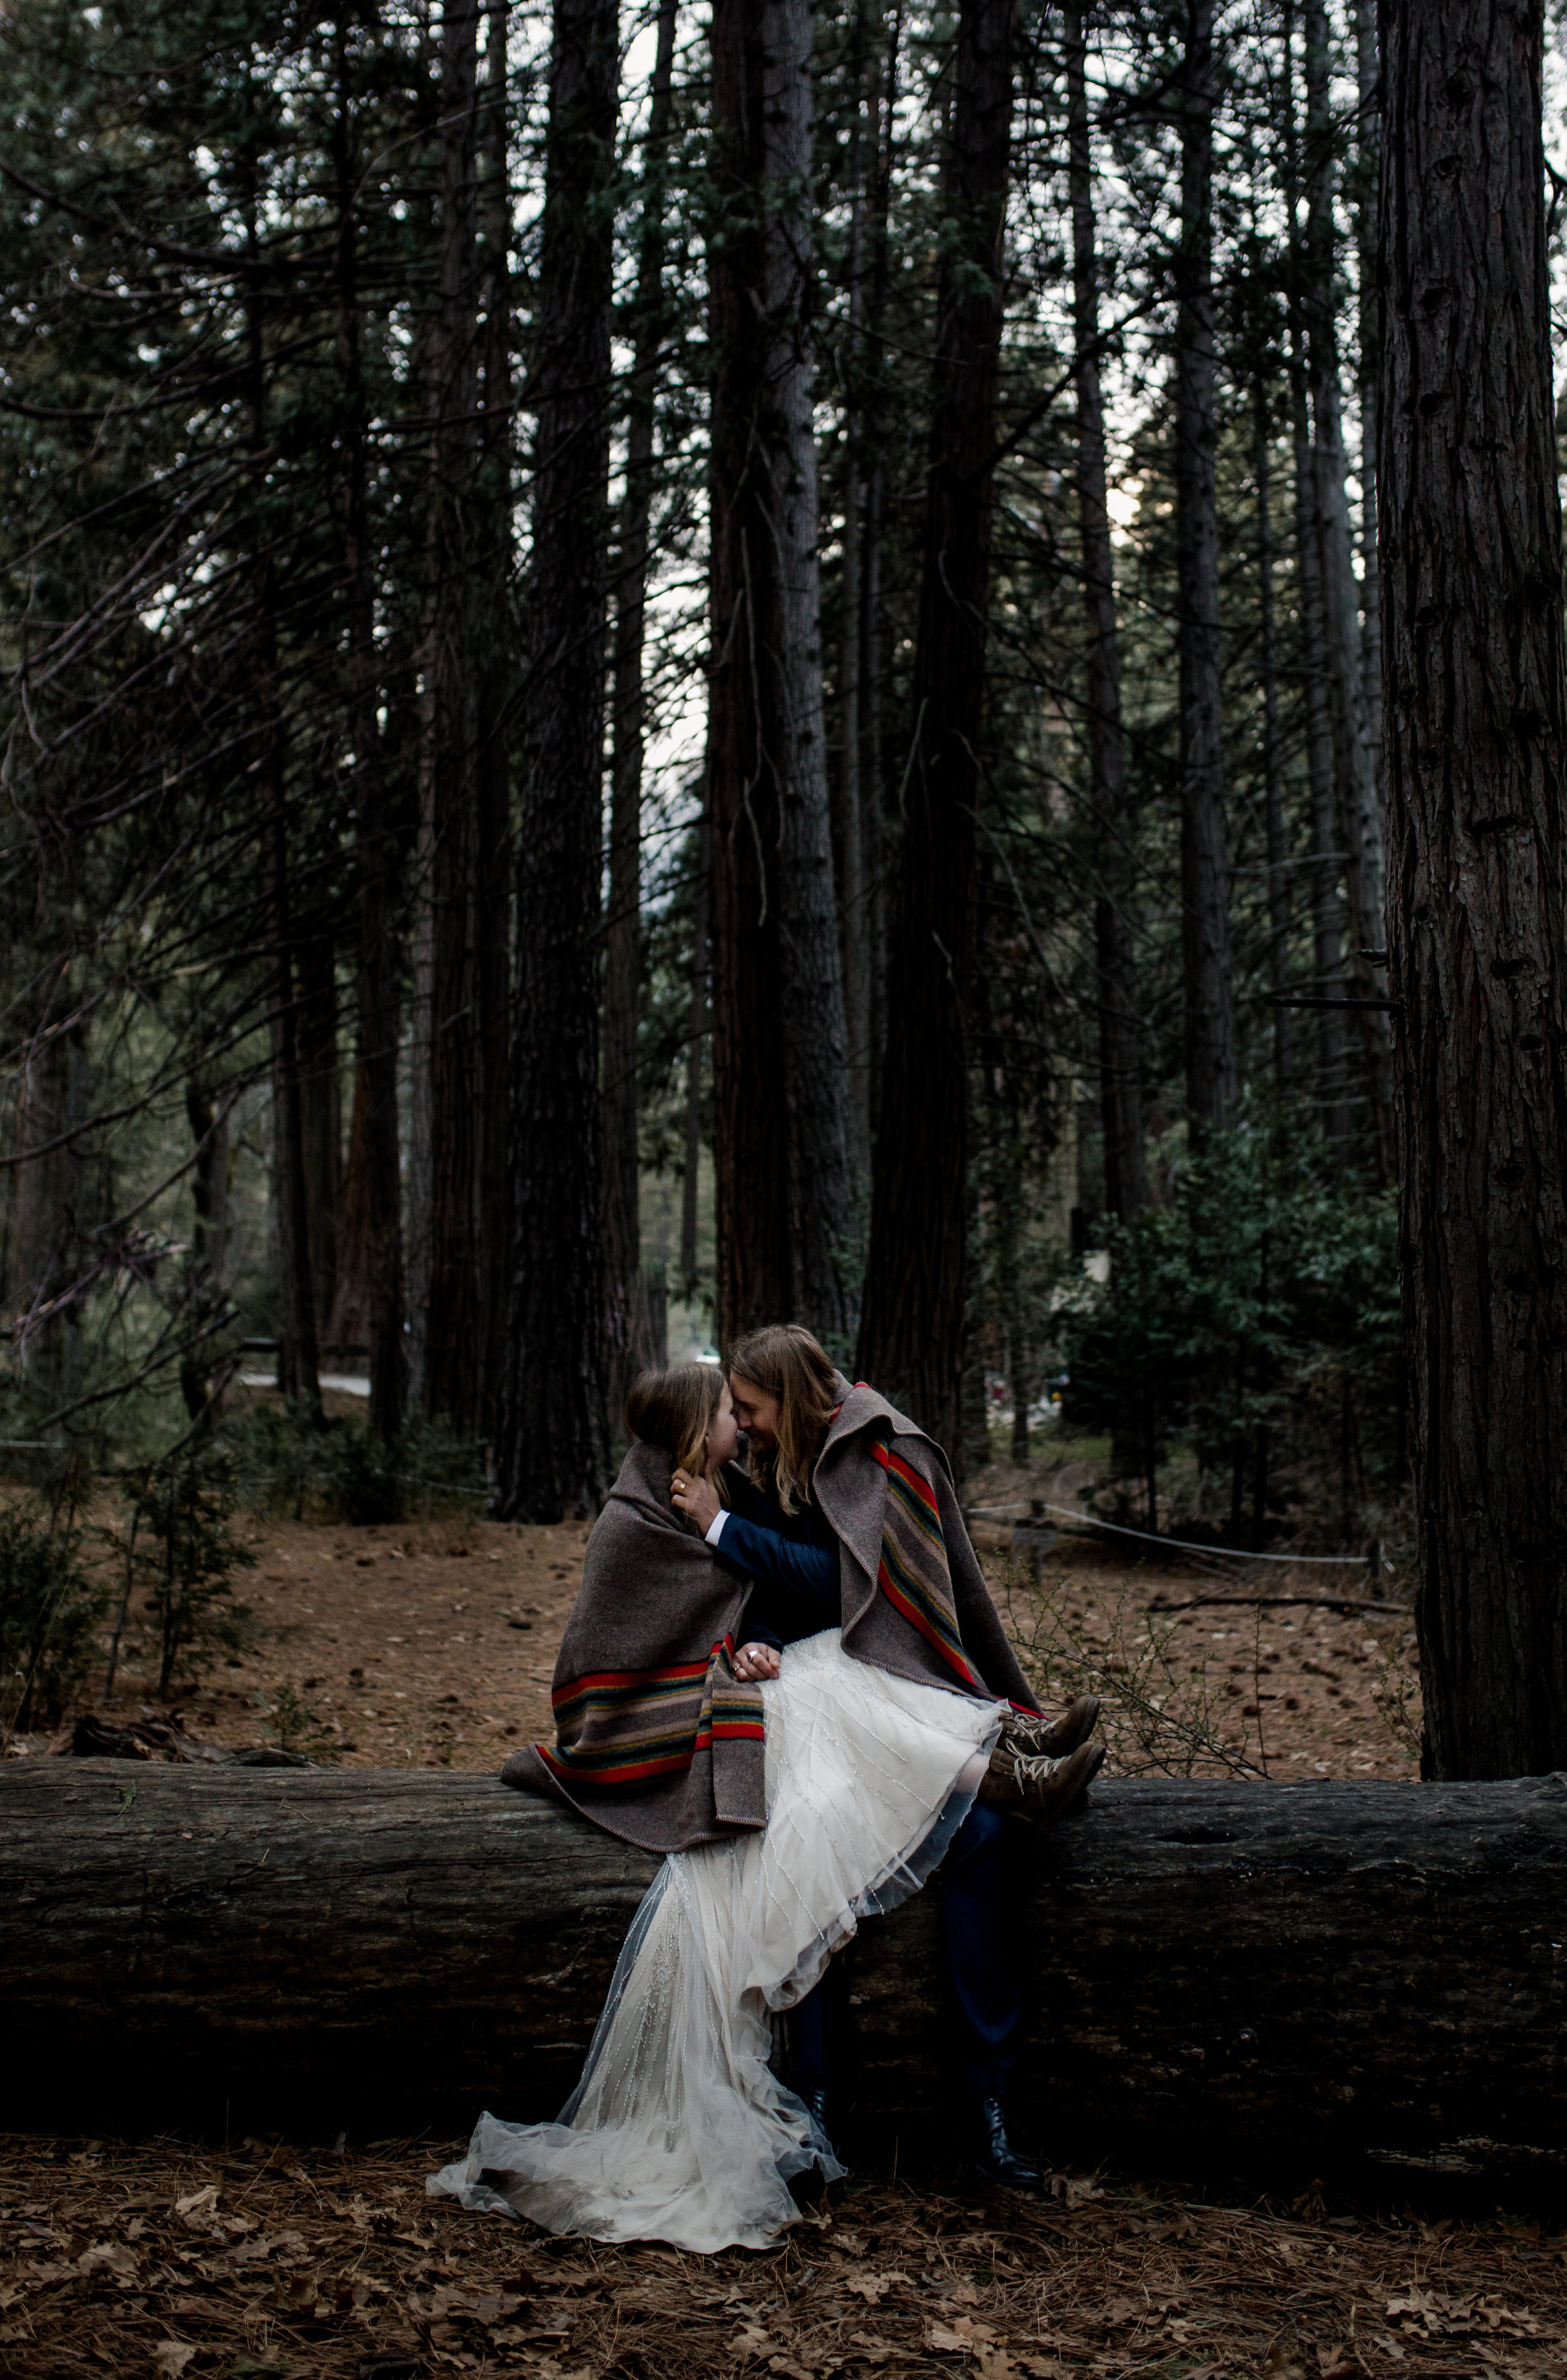 nicole-daacke-photography-yousemite-national-park-elopement-photographer-winter-cloud-moody-elope-inspiration-yosemite-valley-tunnel-view-winter-cloud-fog-weather-wedding-photos-98.jpg